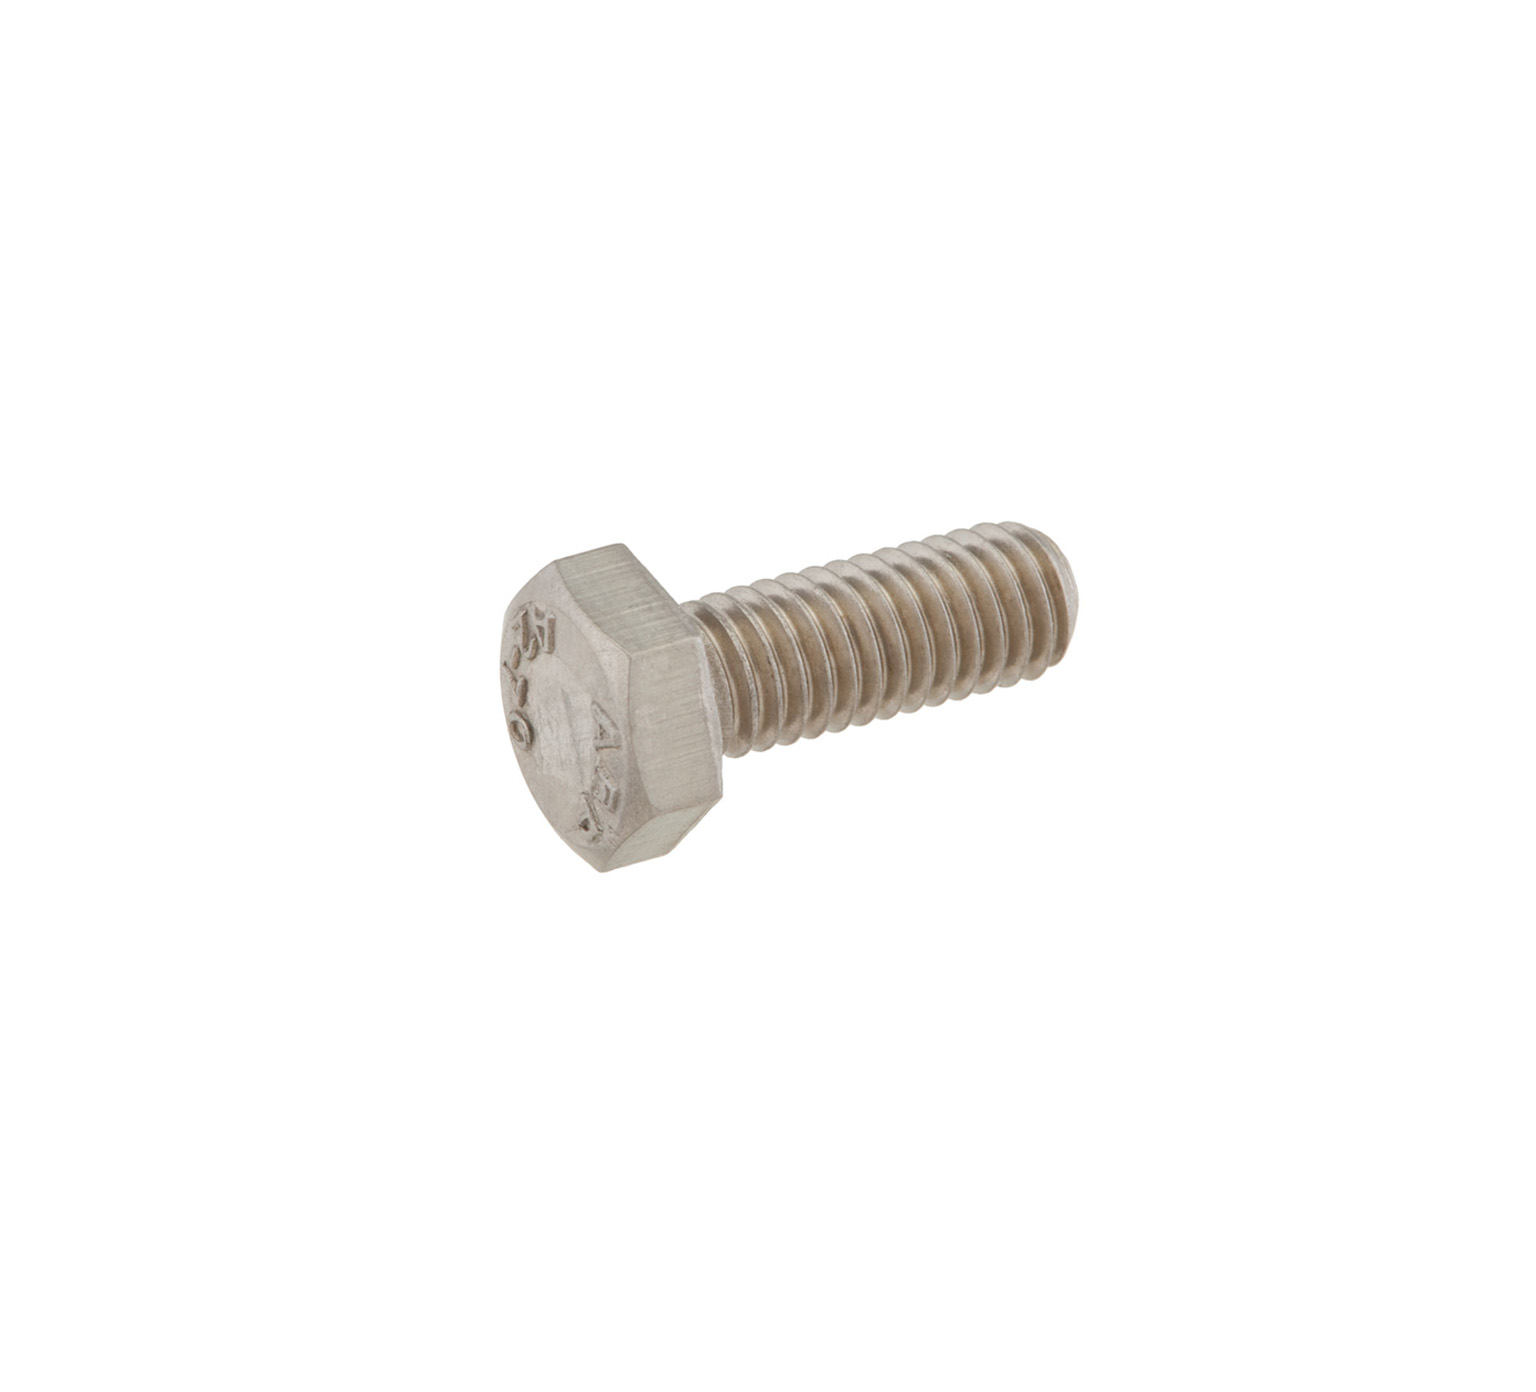 15678 Stainless Steel Hex Screw - M6 Thread x 0.62 in alt 1